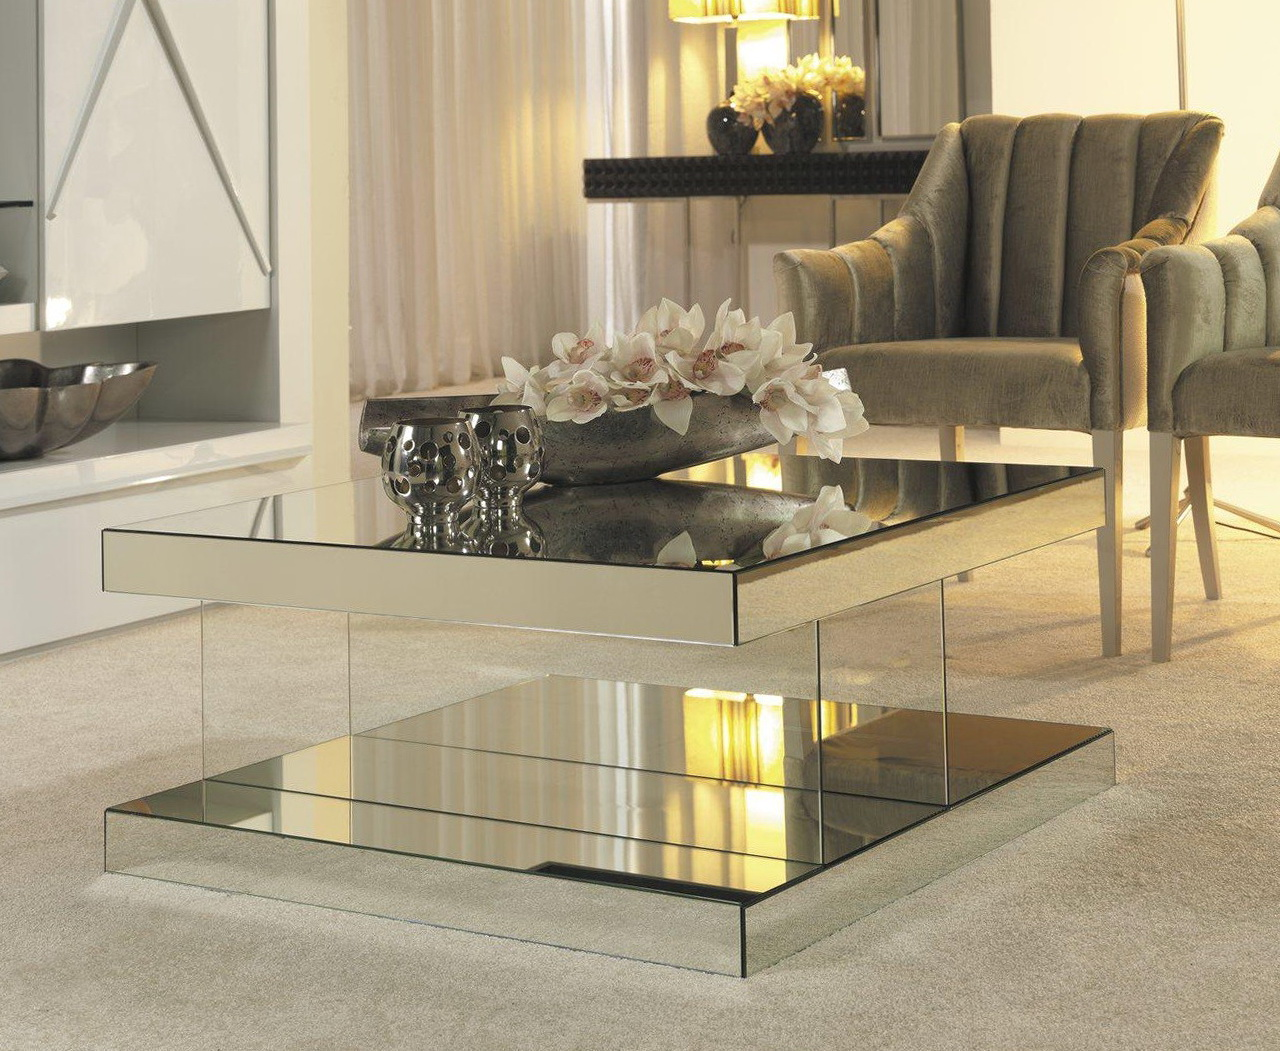 ... Cheap Mirrored Coffee Table 22